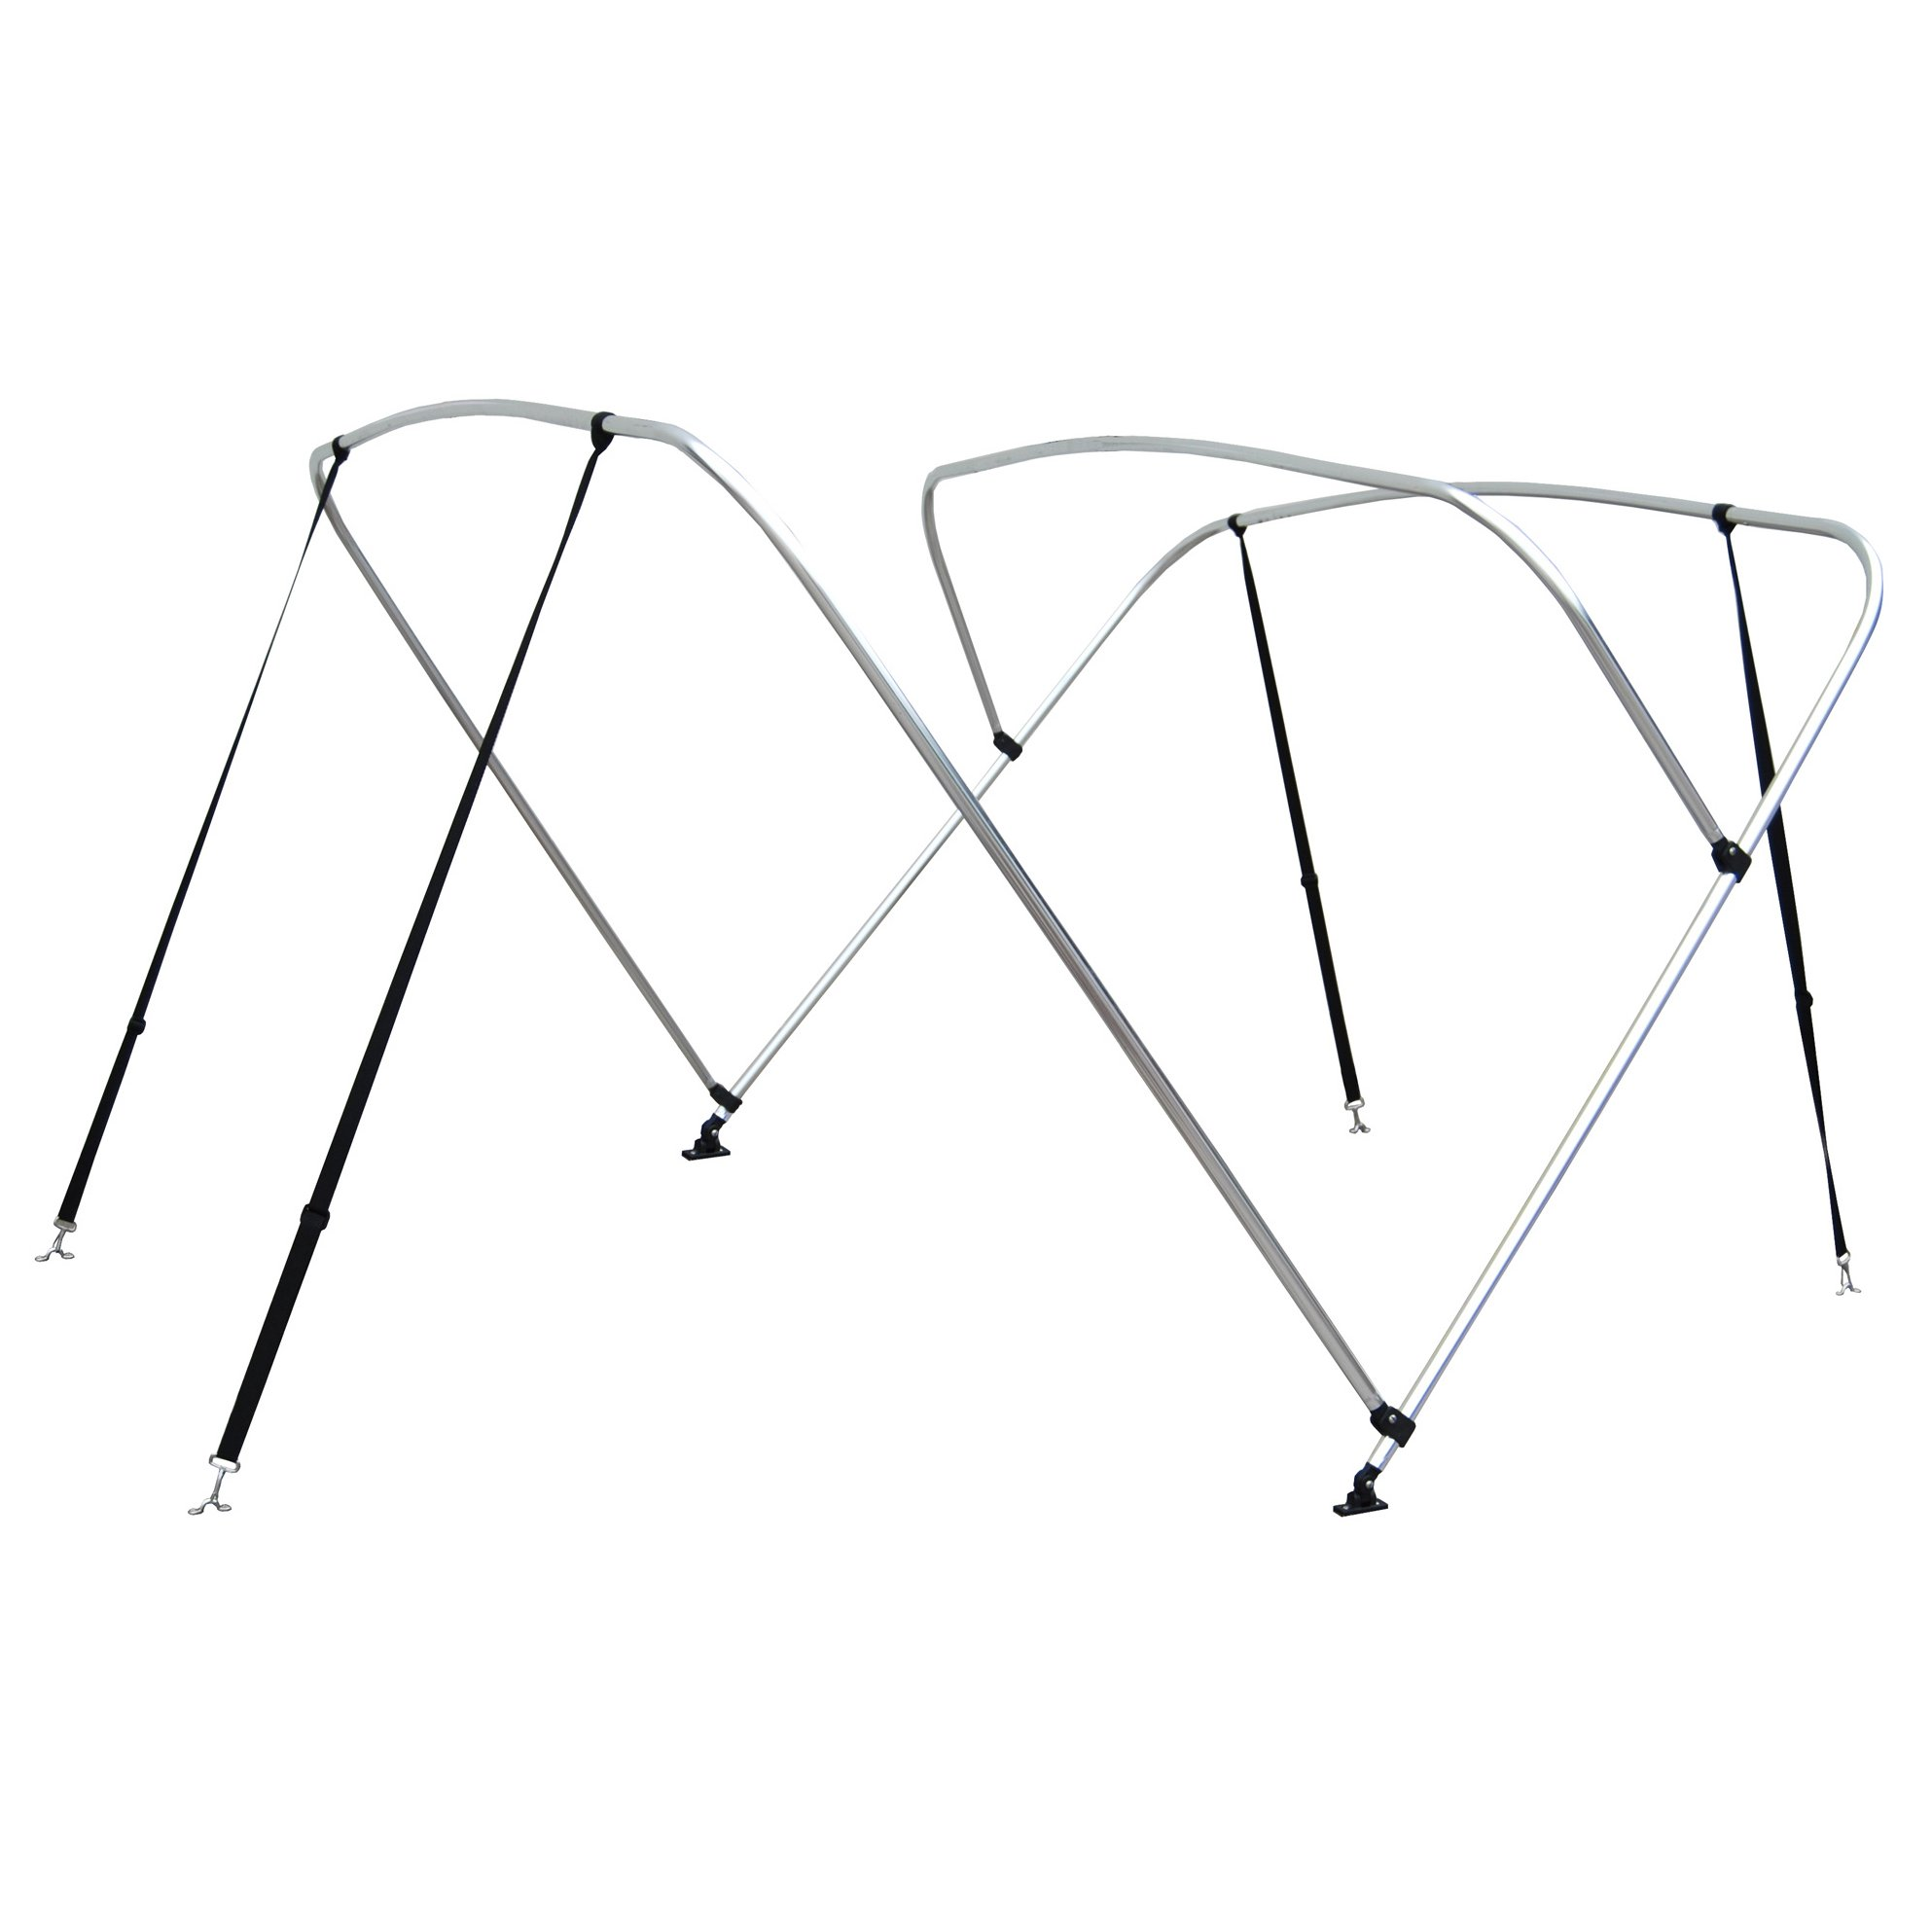 Shademate White Vinyl Stainless 3-Bow Bimini Top 5'L x 32''H 67''-72'' Wide